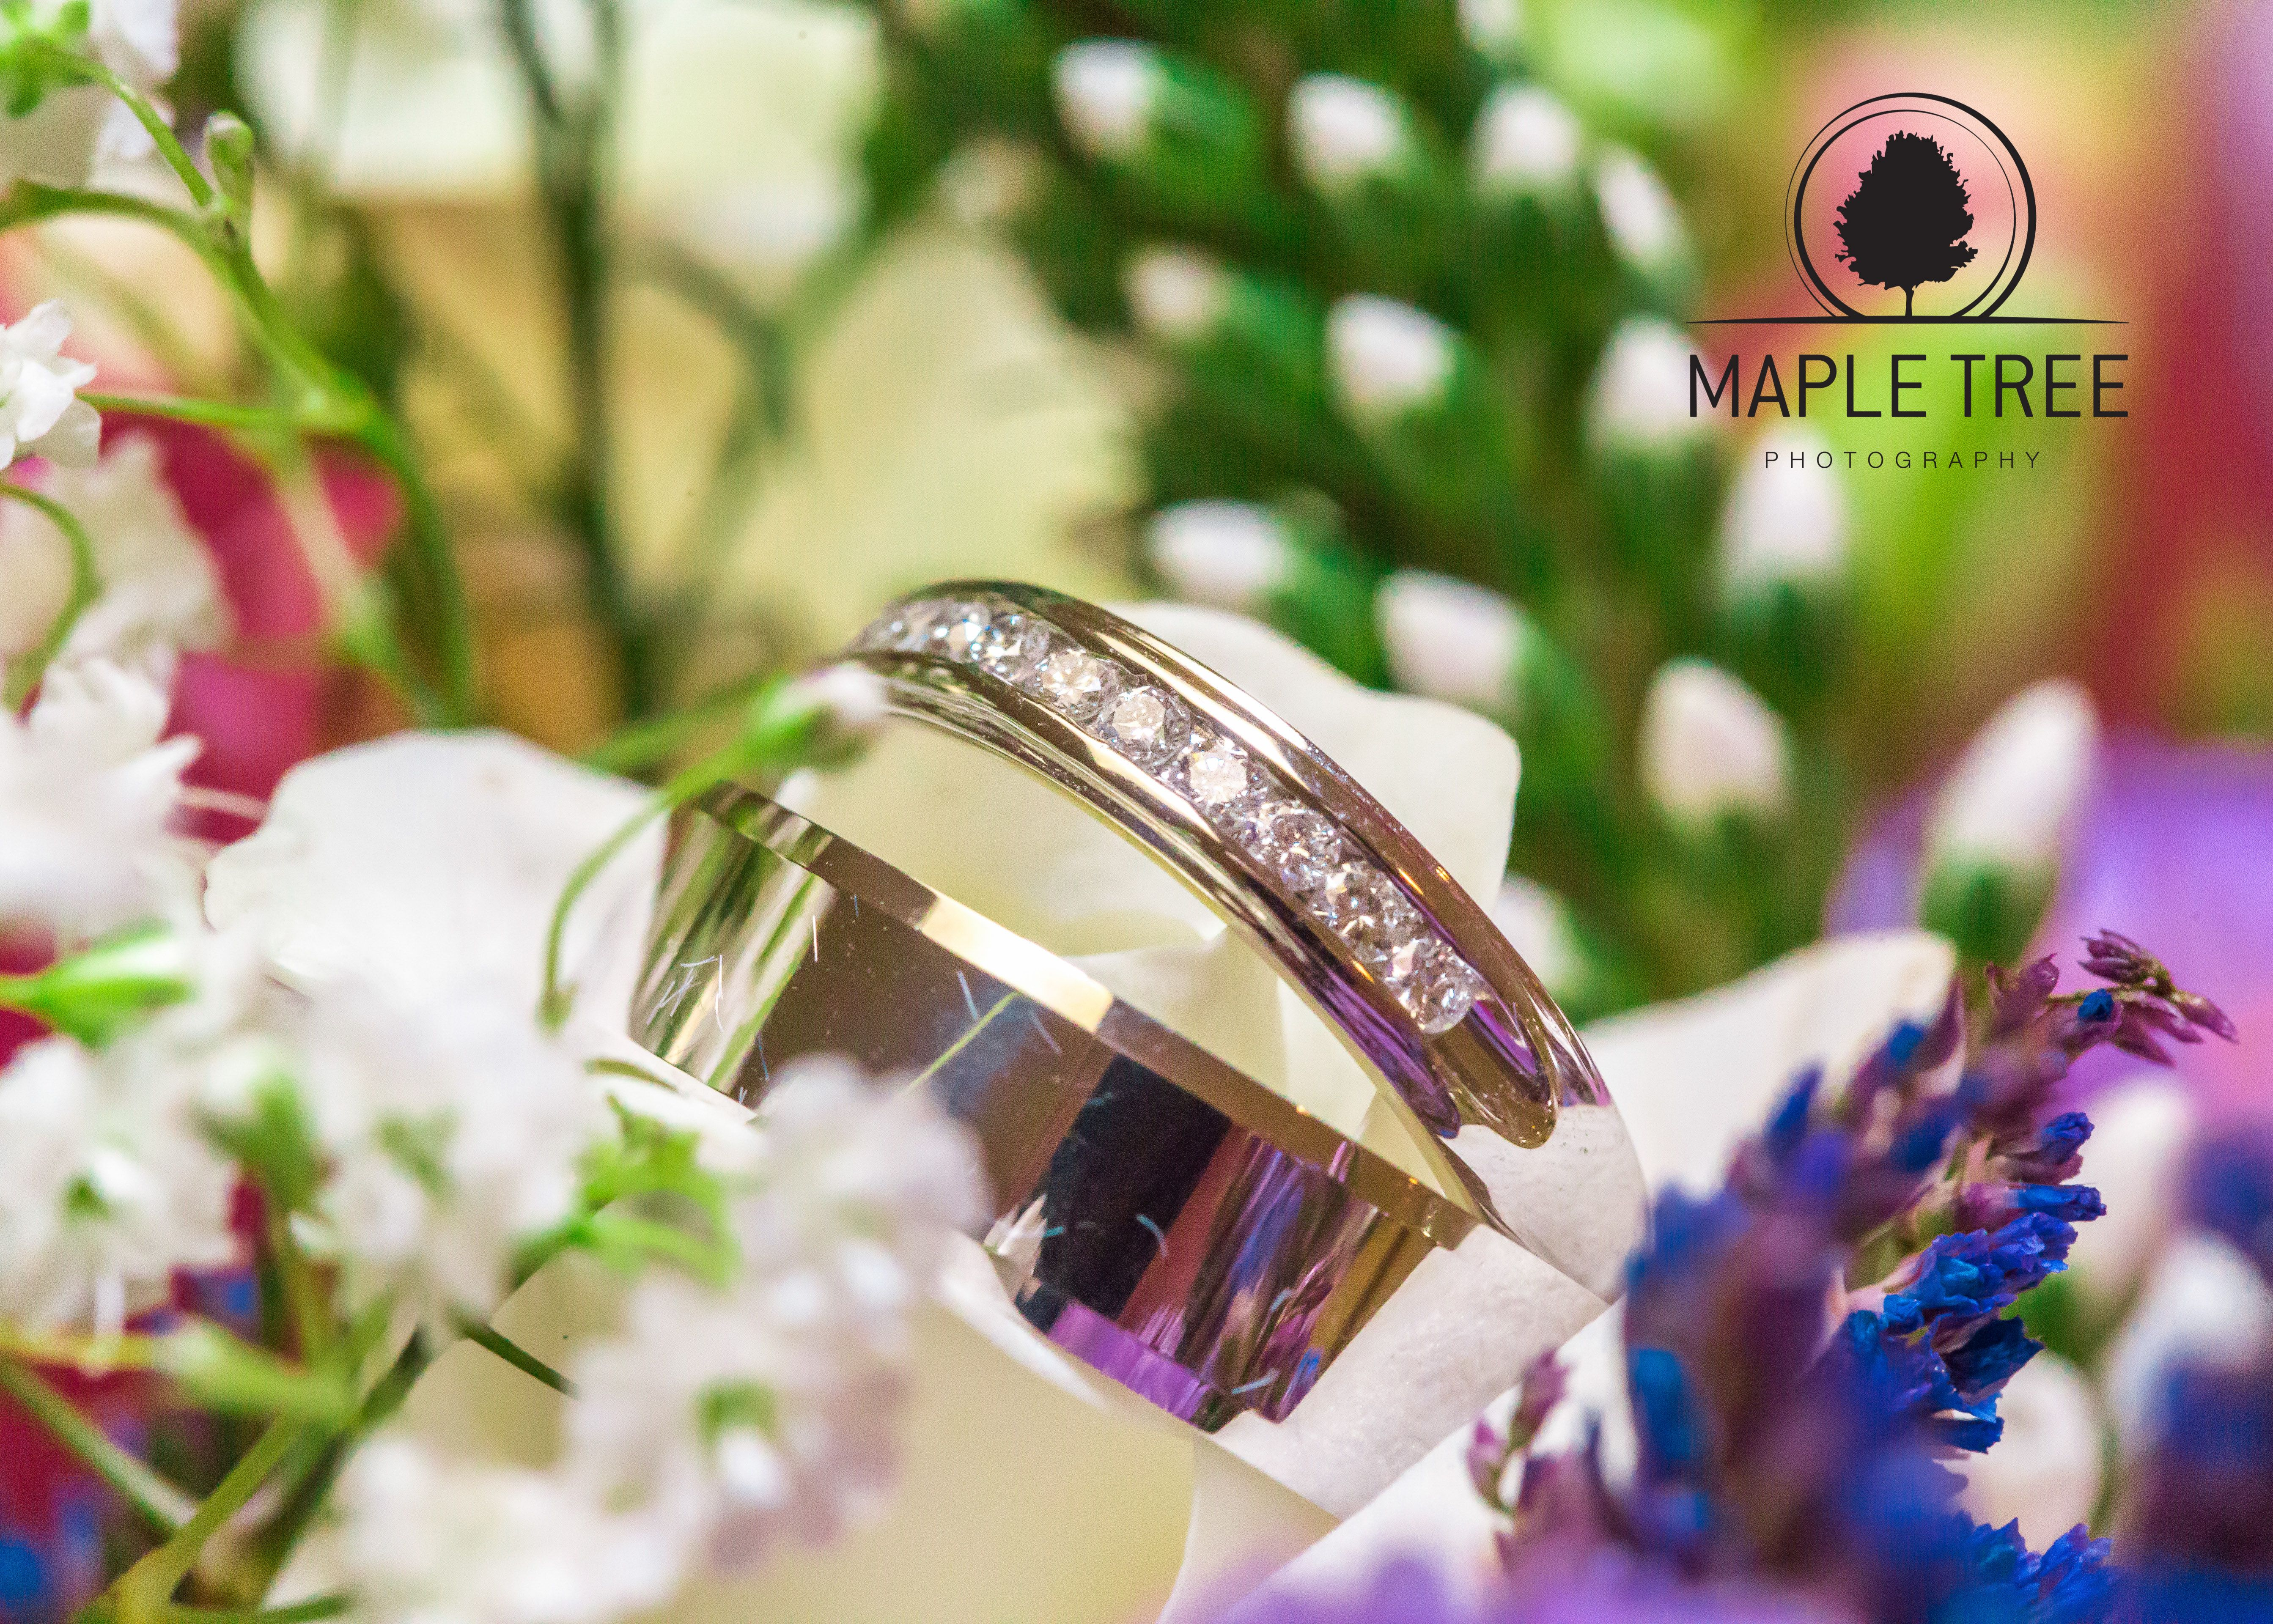 Bride and Groom's wedding rings in the bouquet.